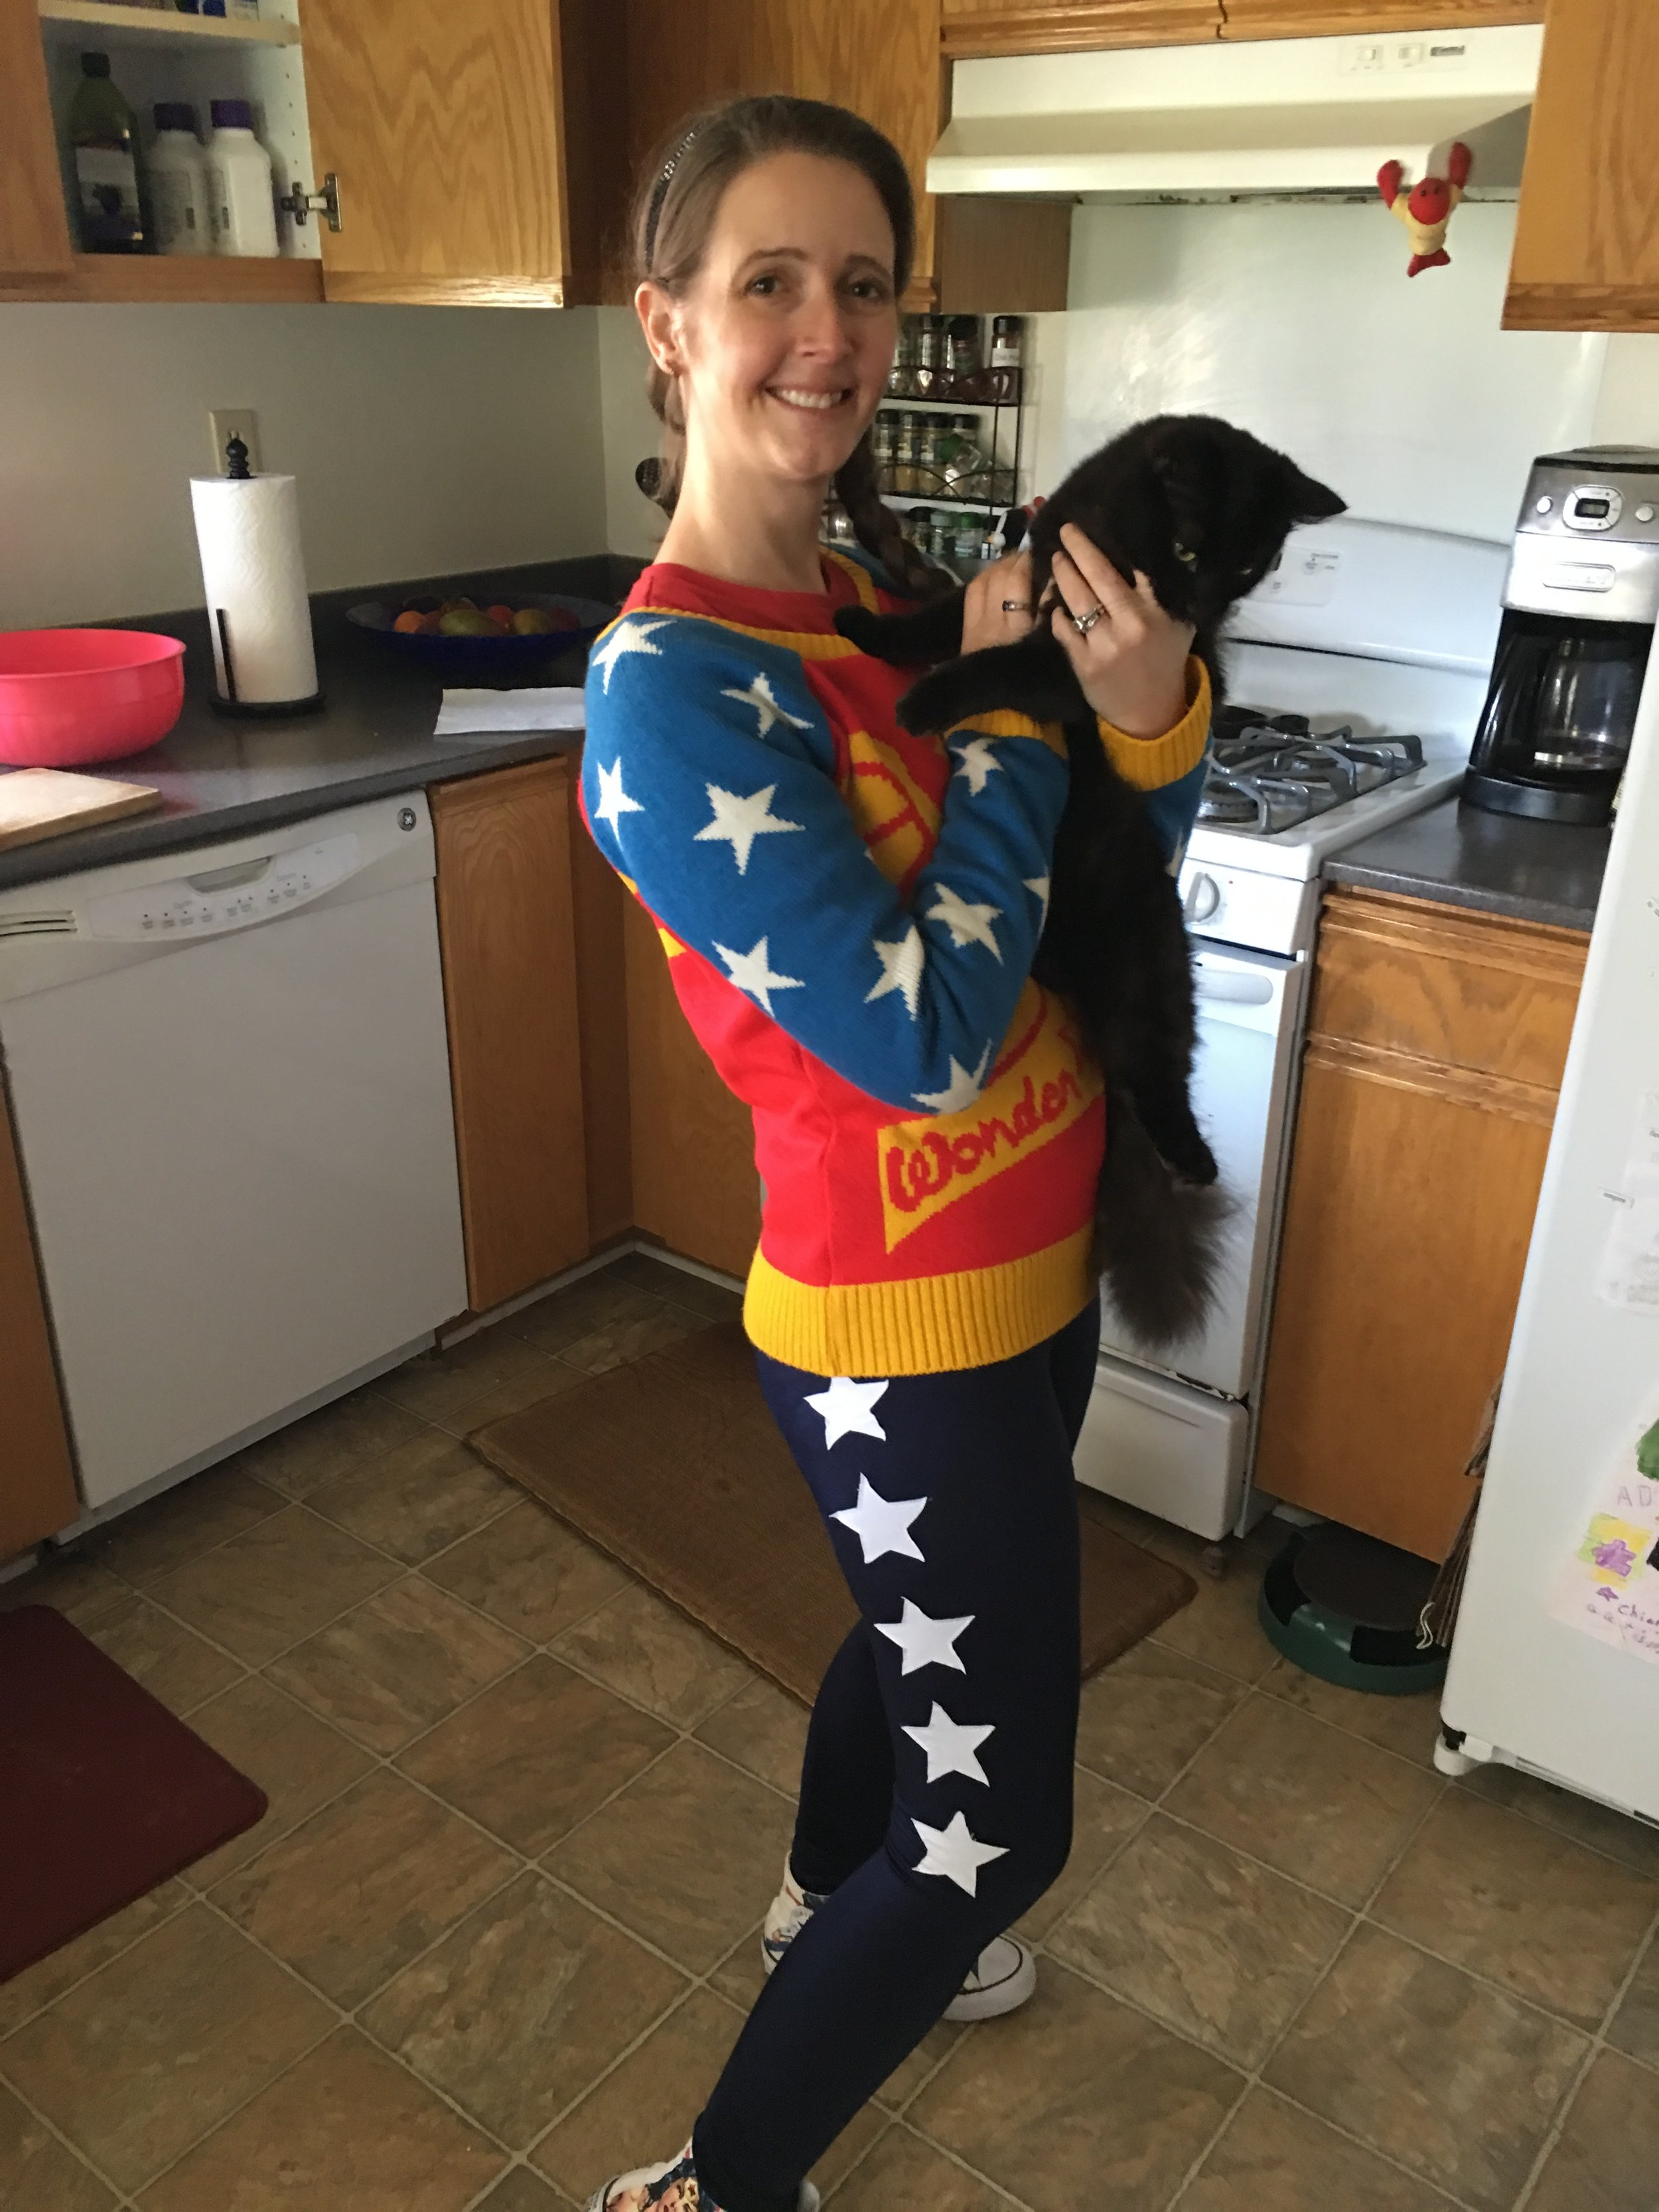 I don't generally care too much about what people think of what I'm wearing. Wednesday is Wonder Woman Wednesday, for example; I wore this same outfit yesterday to a neurologist's appointment. But, pj's to have my kid rescued from a tree was a little bit pushing the envelope of good decorum.